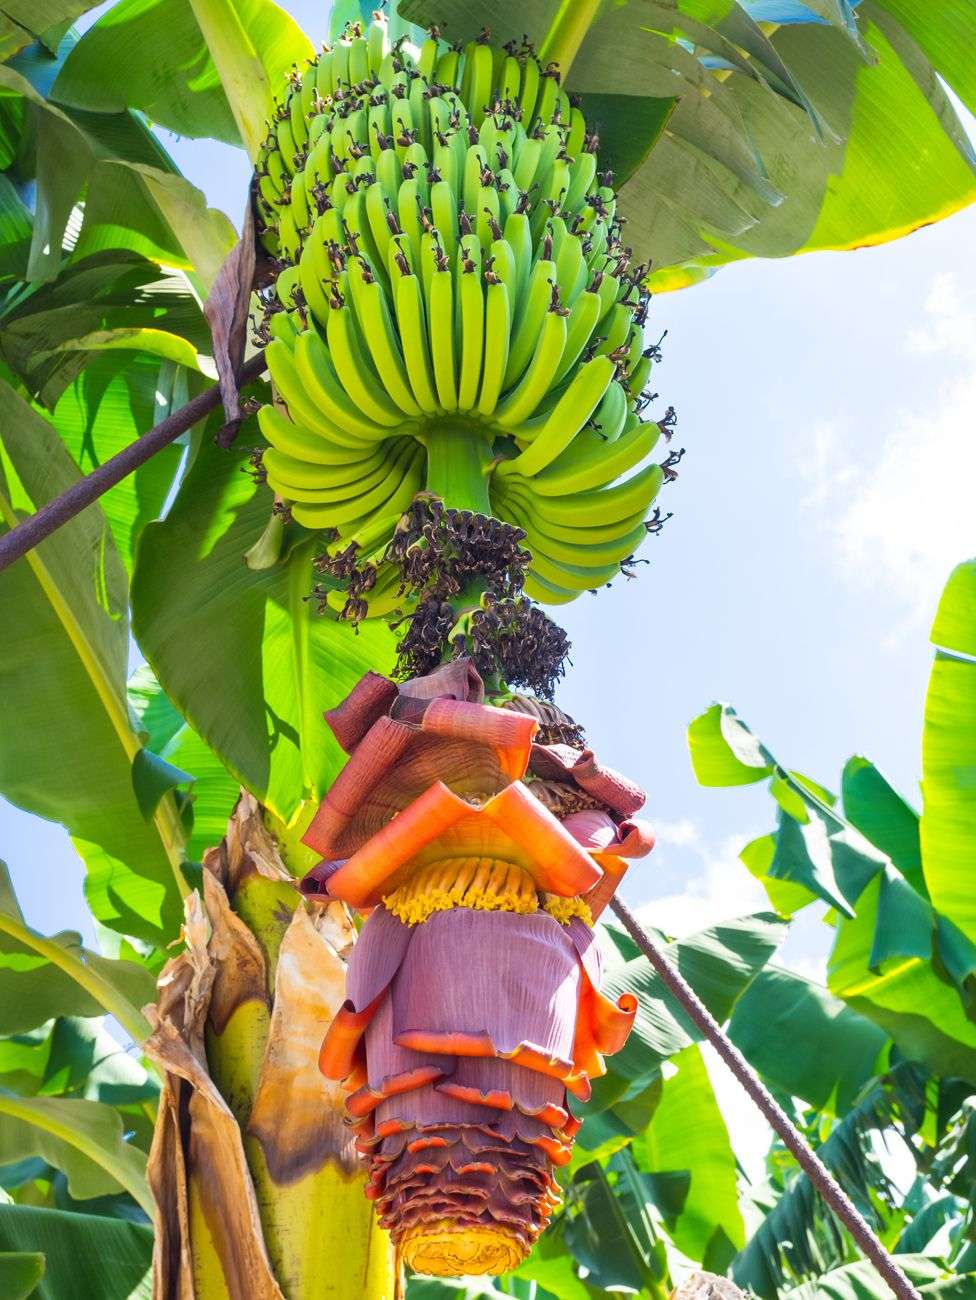 Bananas growing on a tree